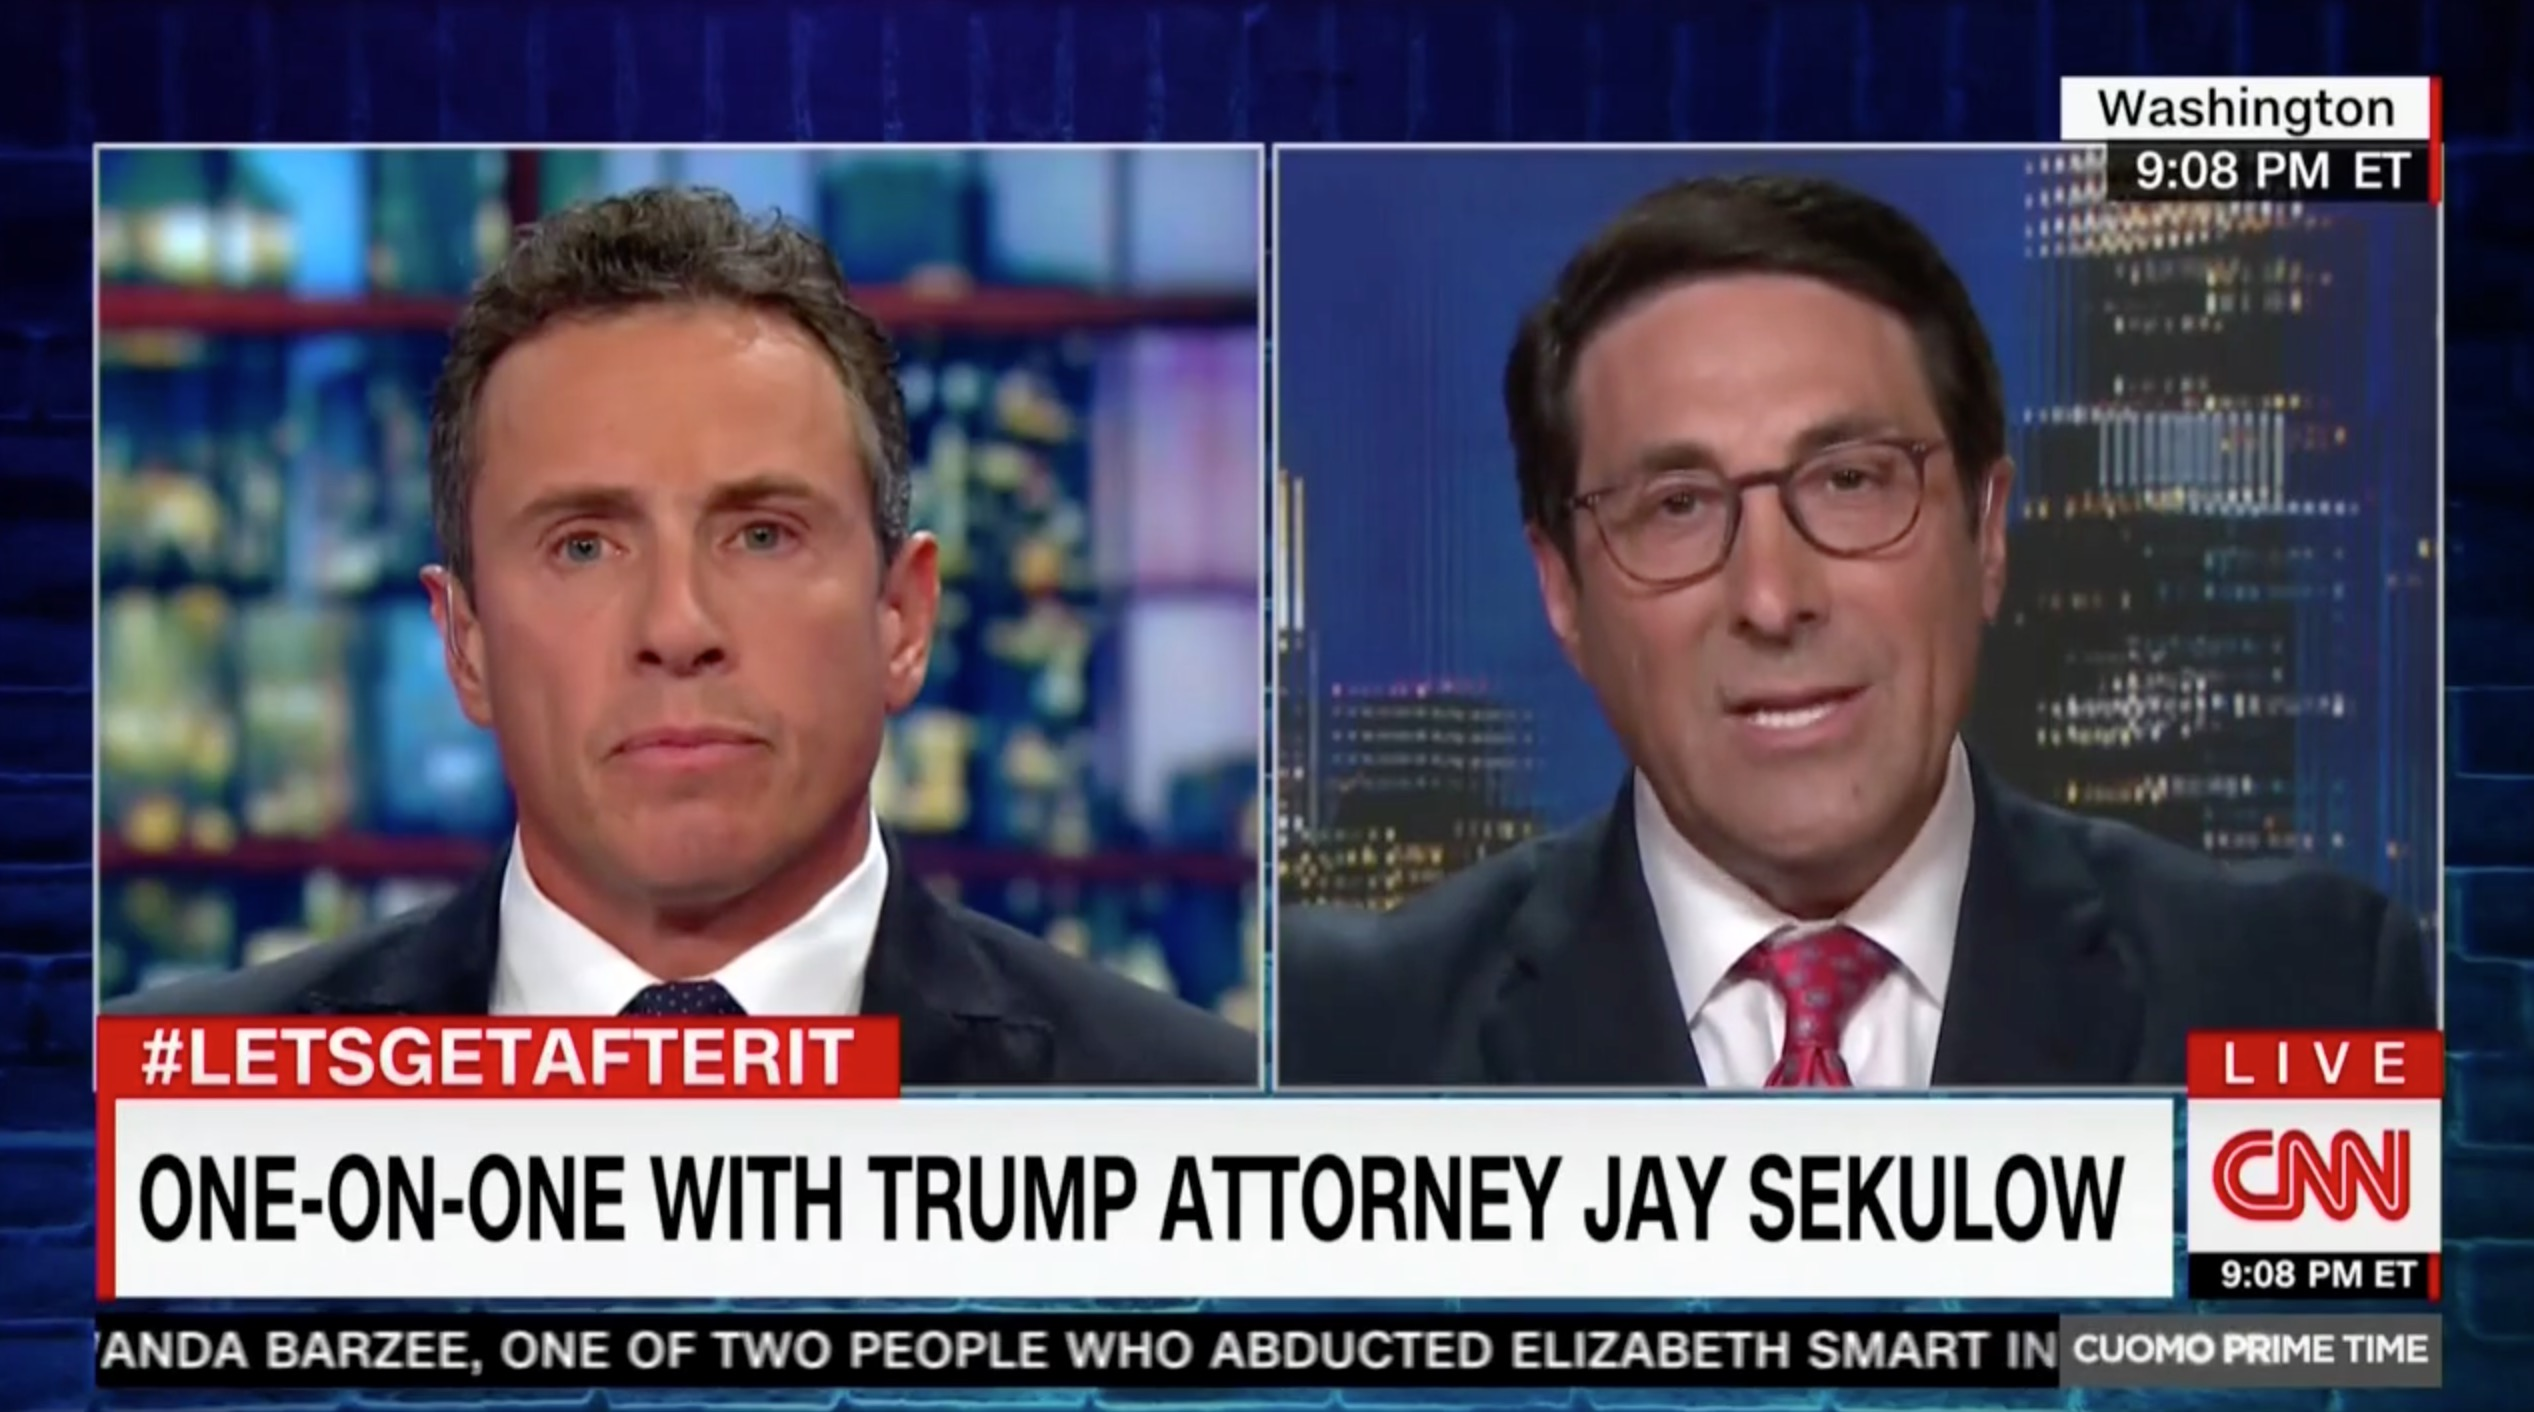 Trump's Lawyer Claims NBC Edited Lester Holt Interview Where Trump Discussed Comey Firing